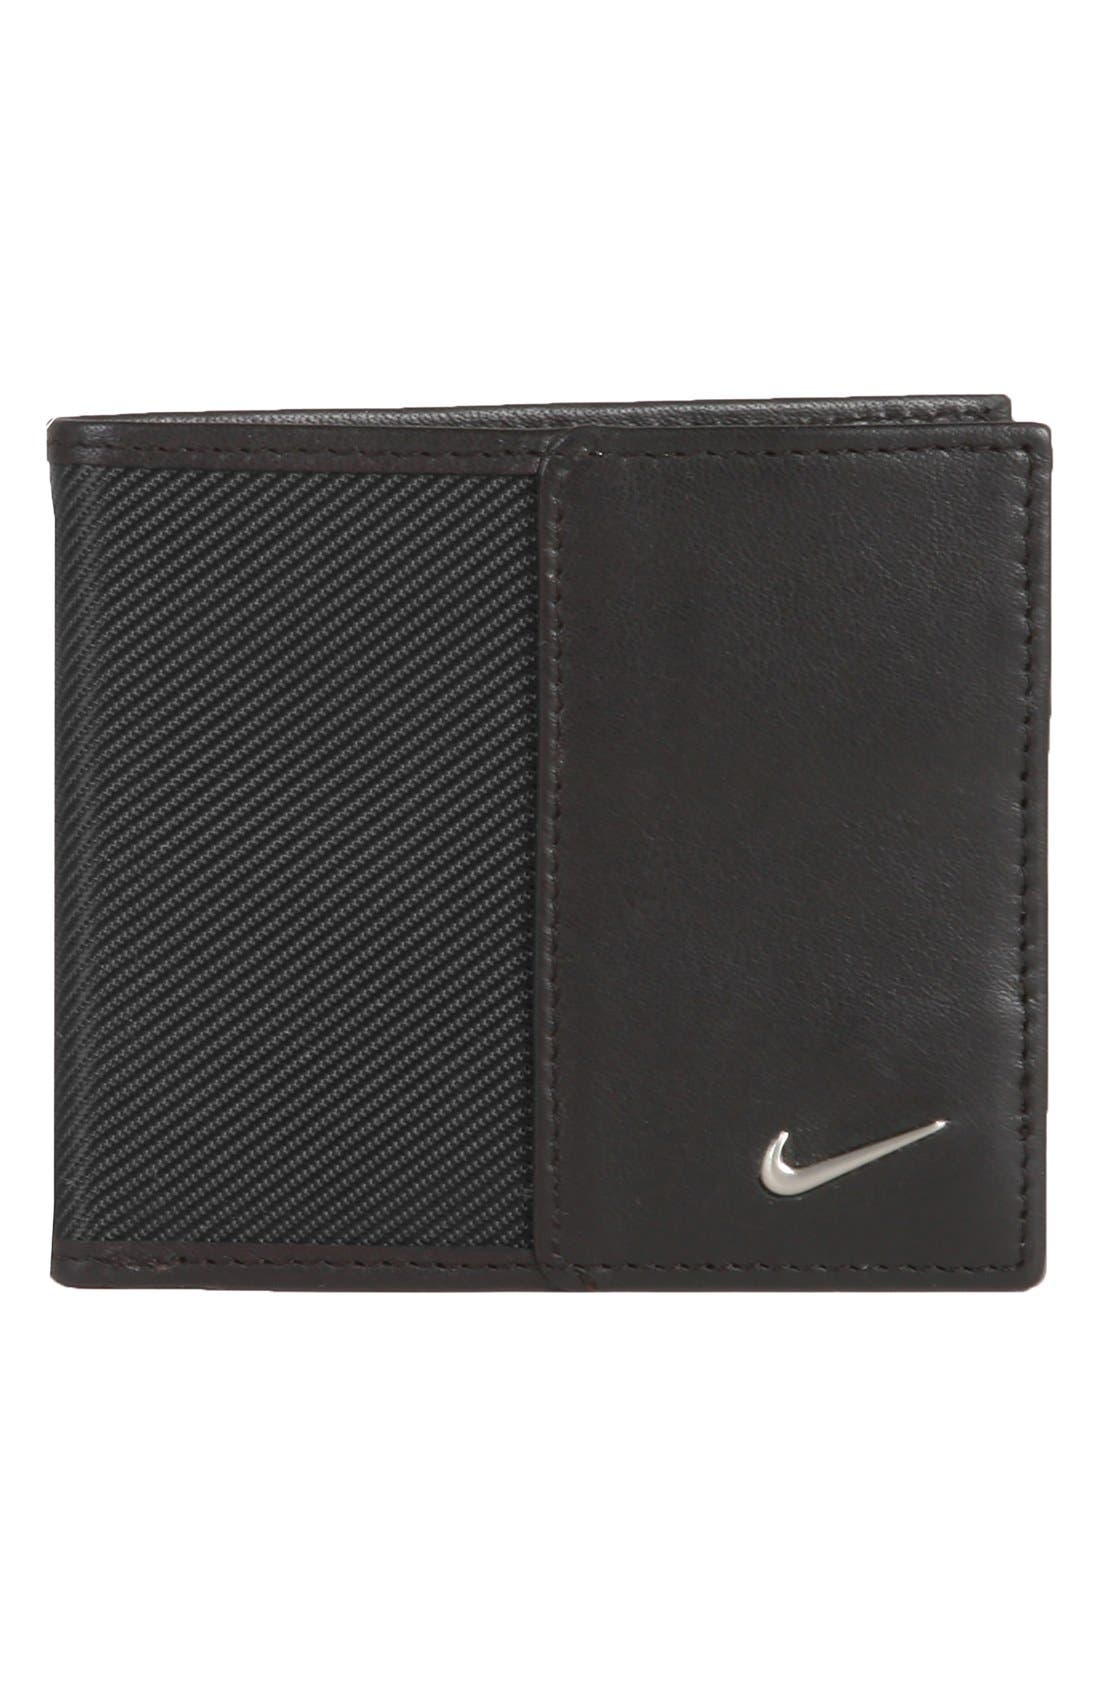 Nike Leather Wallet